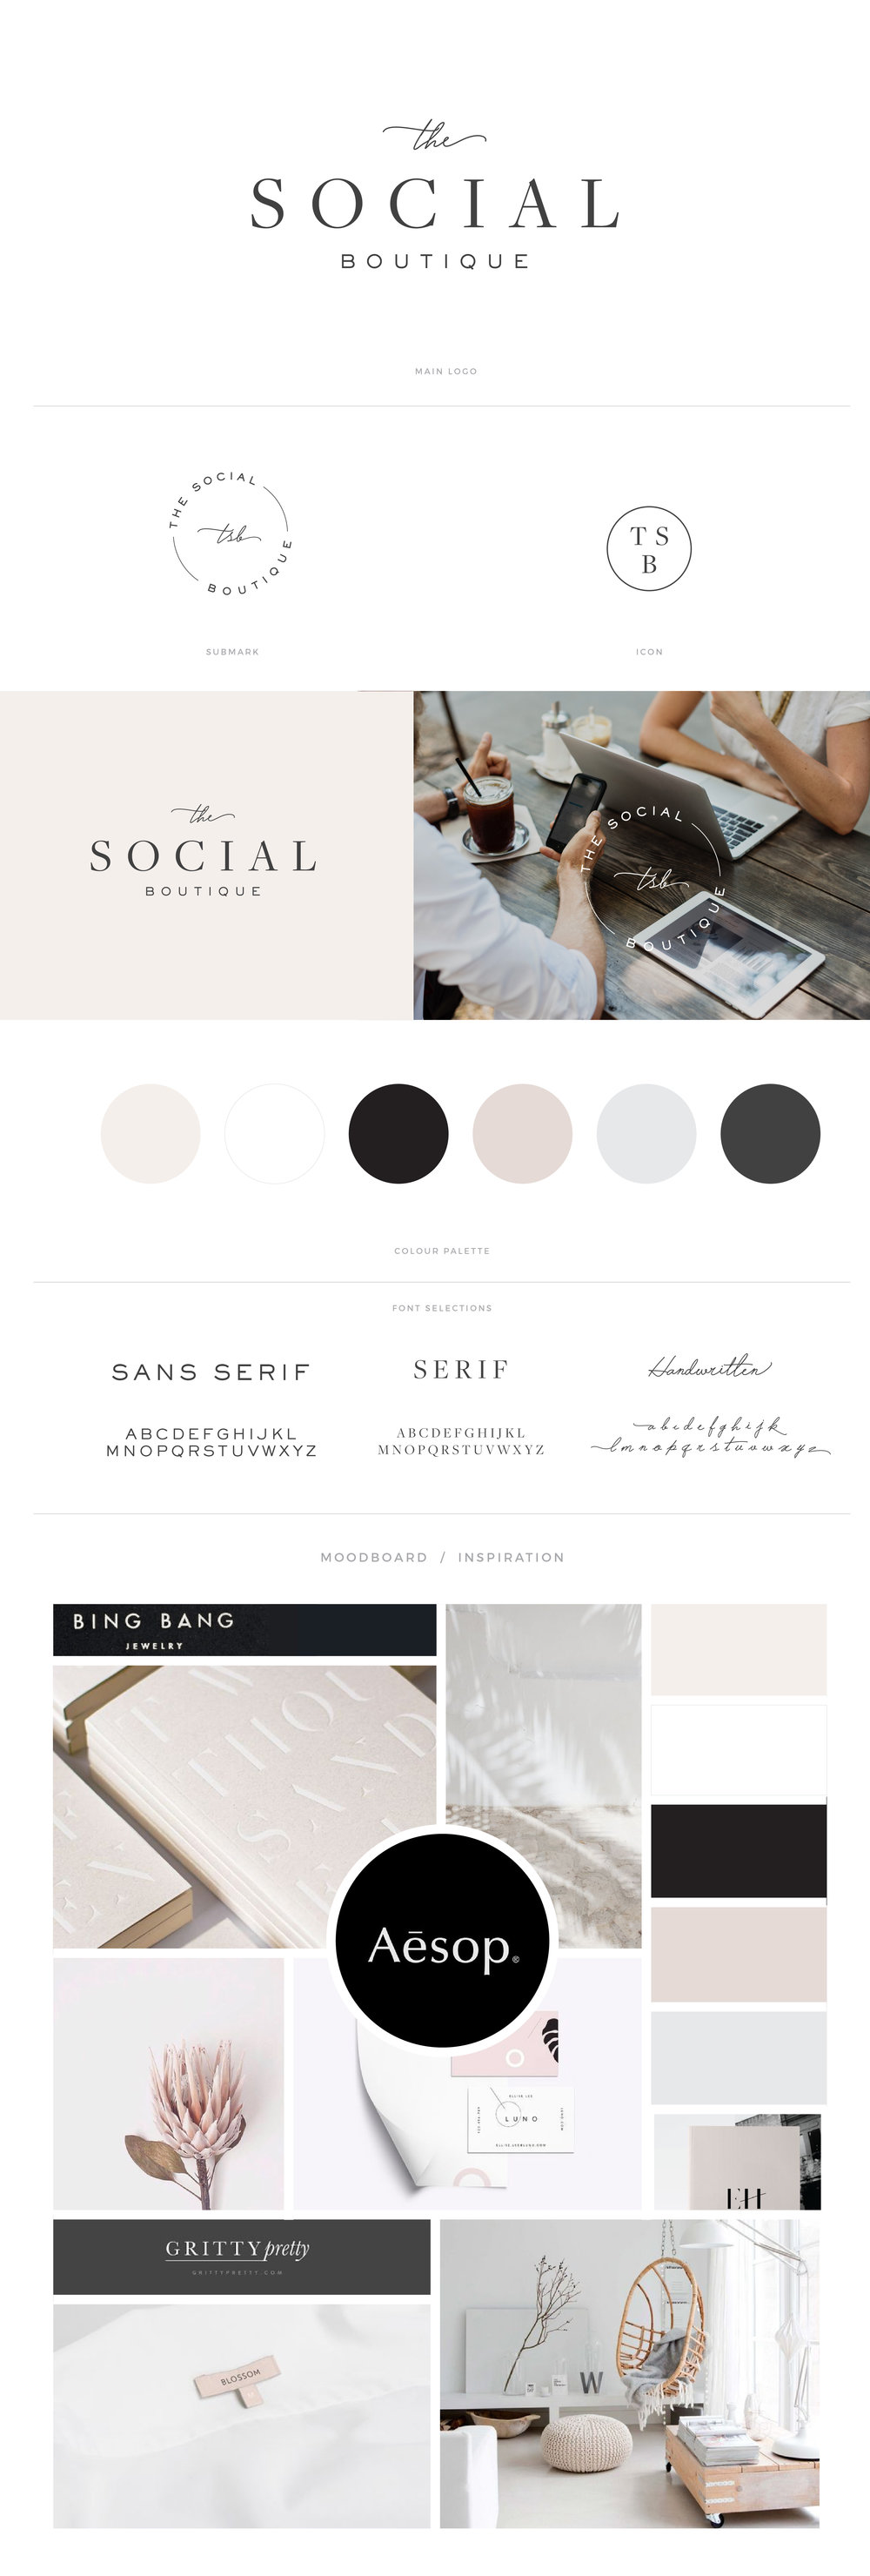 The Social Boutique Brandboard.